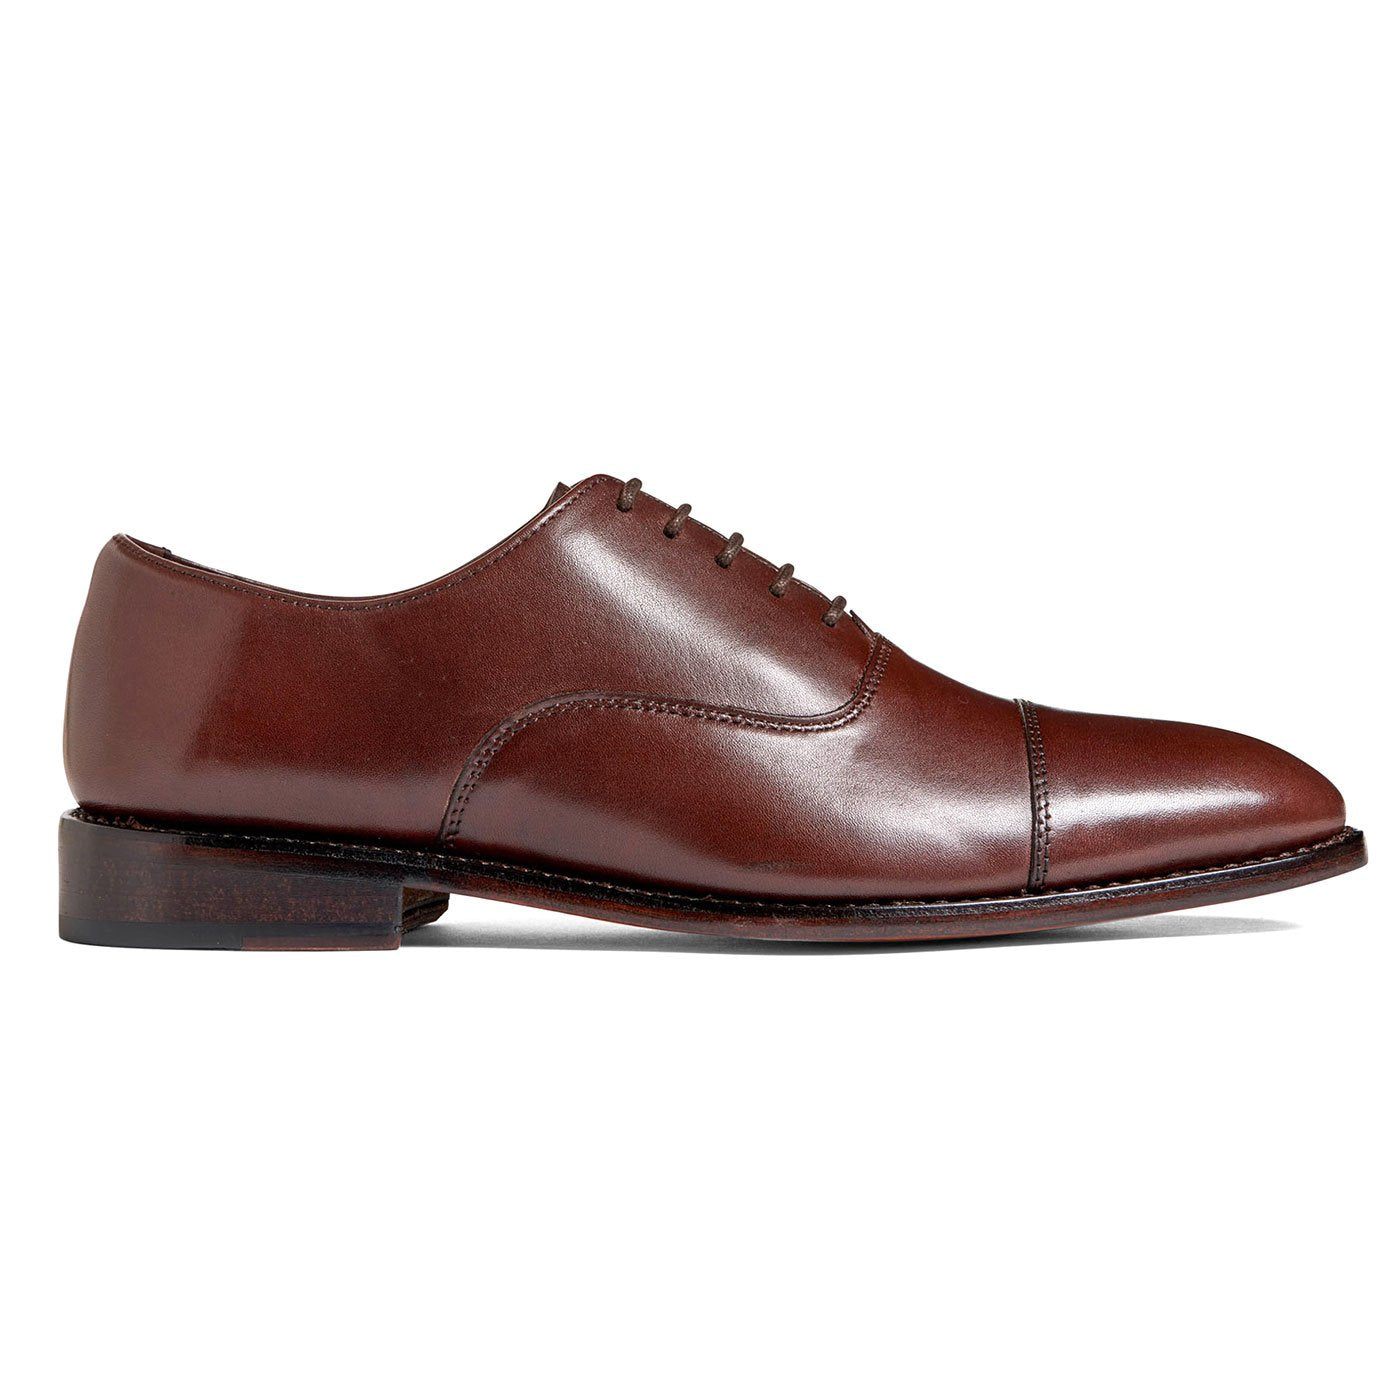 Clinton Cap-toe Oxford Chocolate Brown